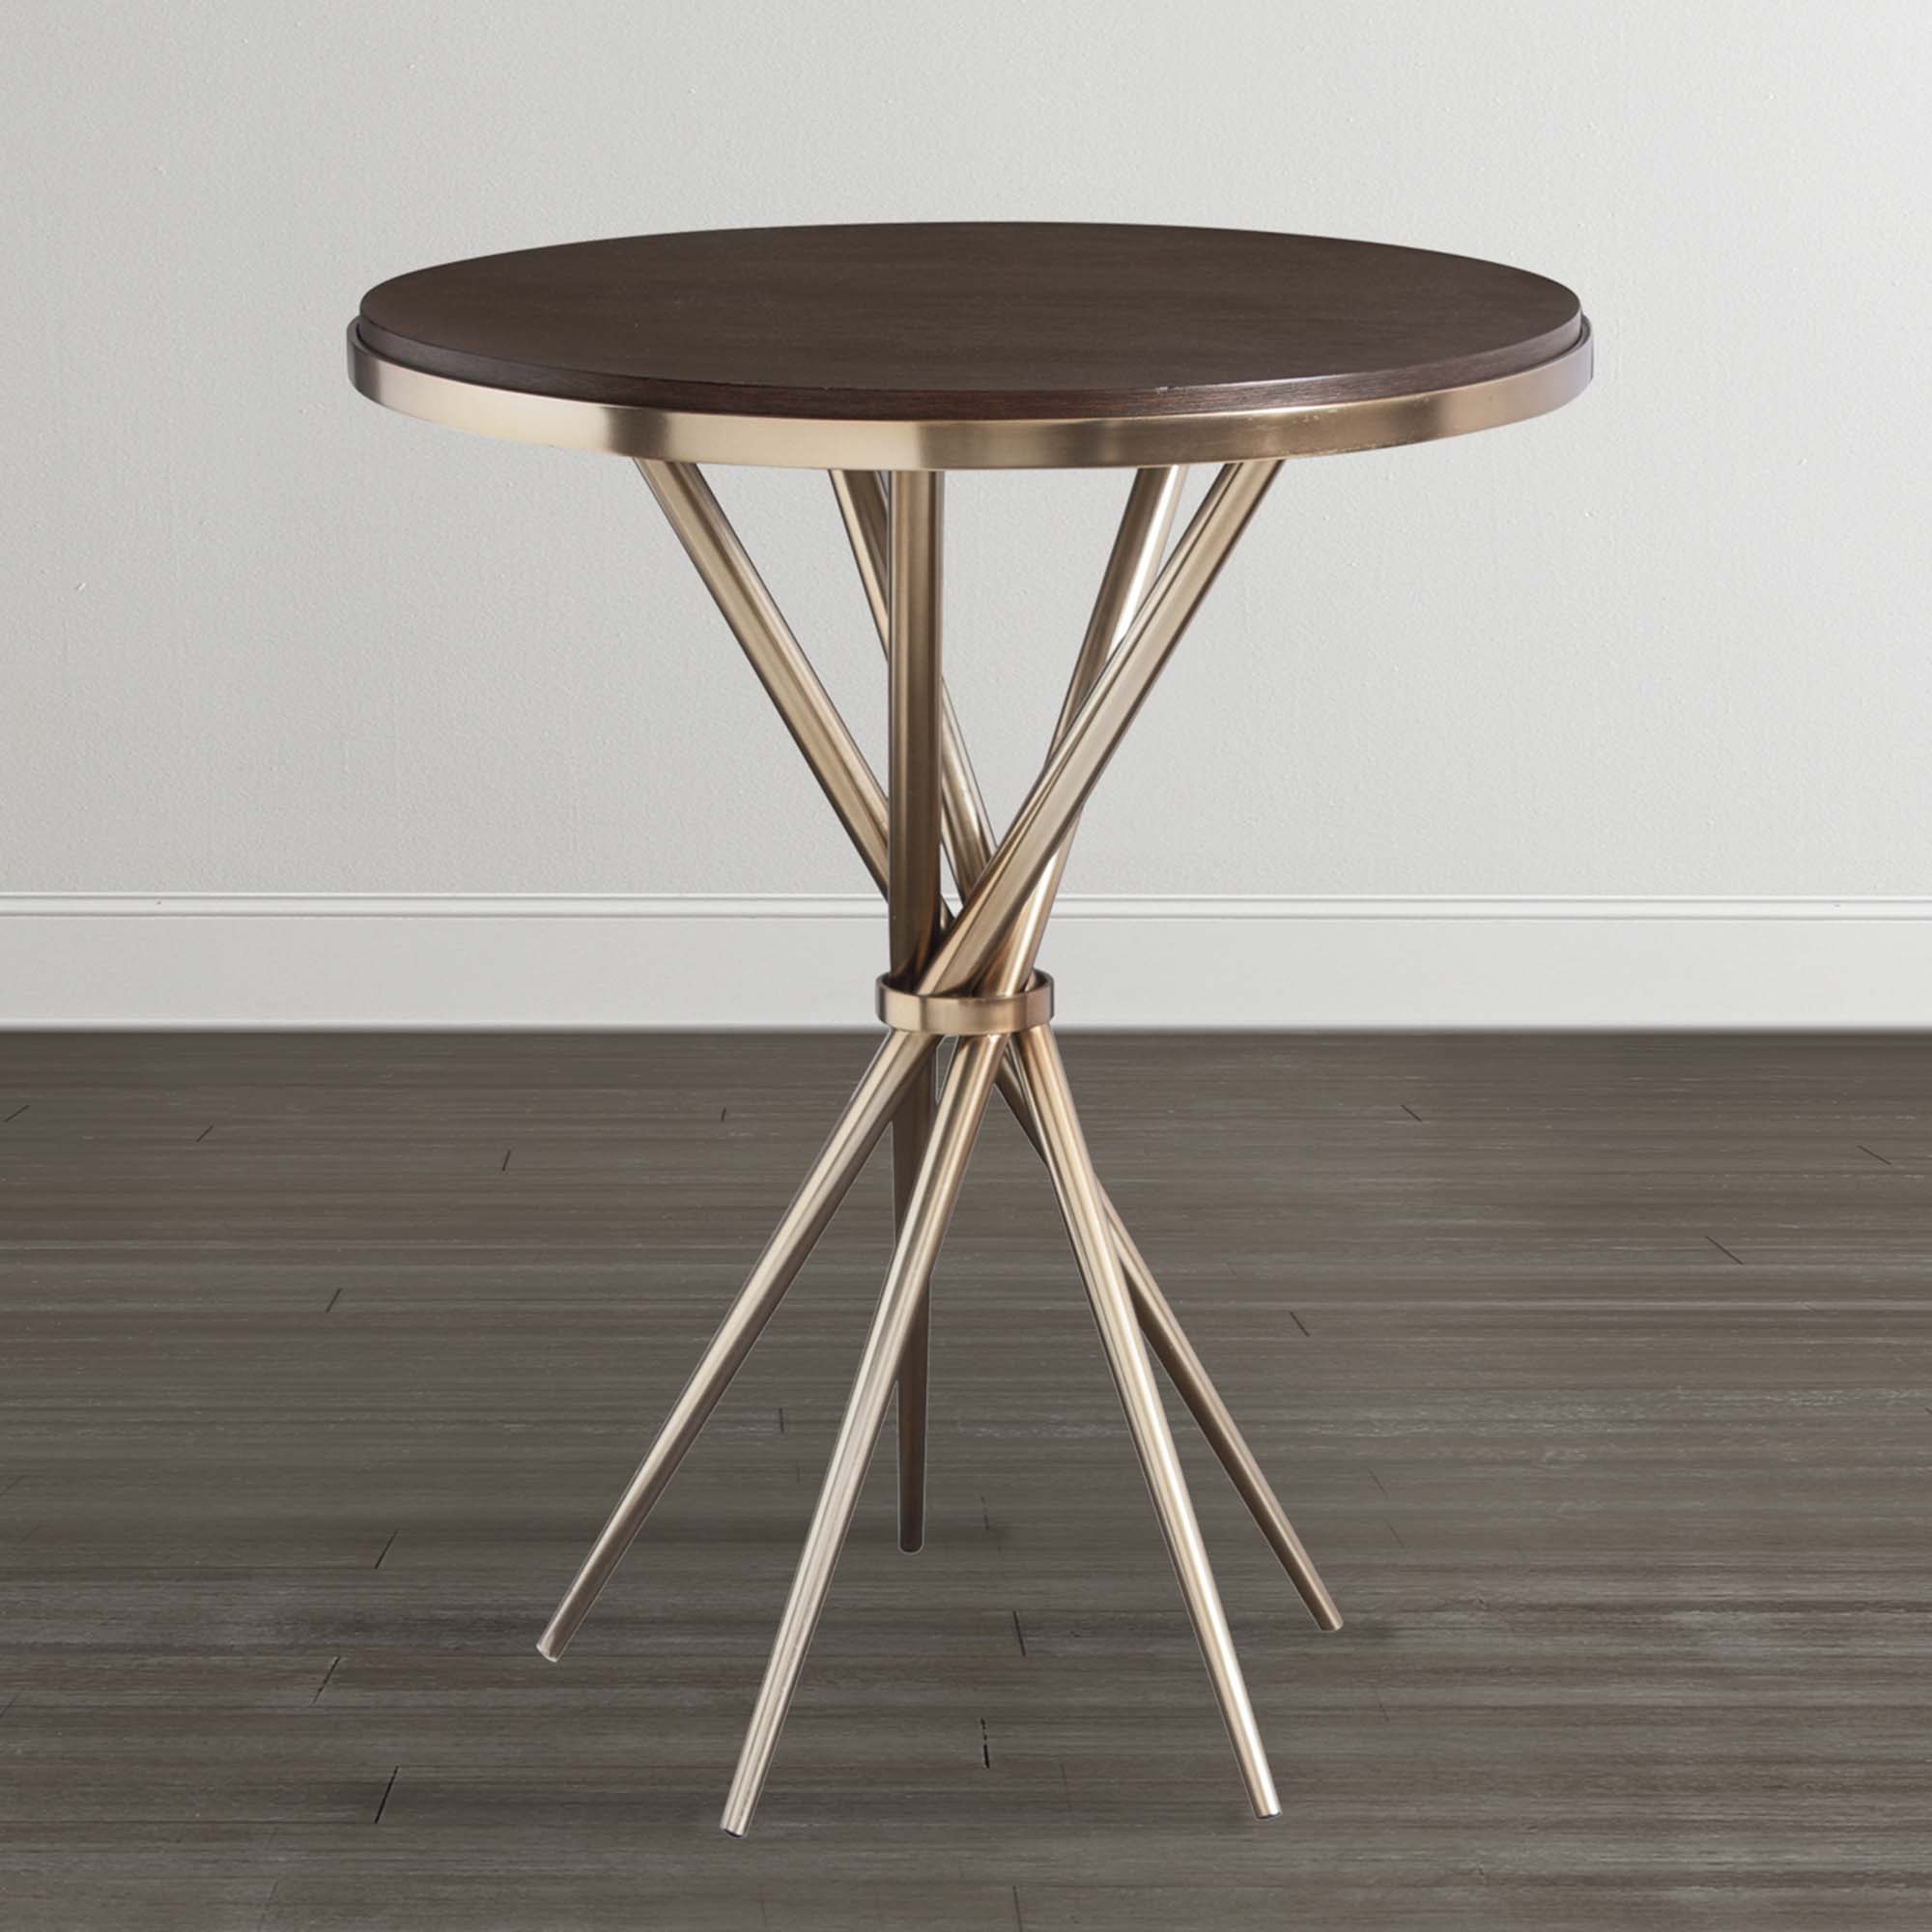 accent tables for your bedroom wood drum table antiquities stiletto extendable outdoor dining mats round coffee with metal legs white side living room blue glass lamp small teak